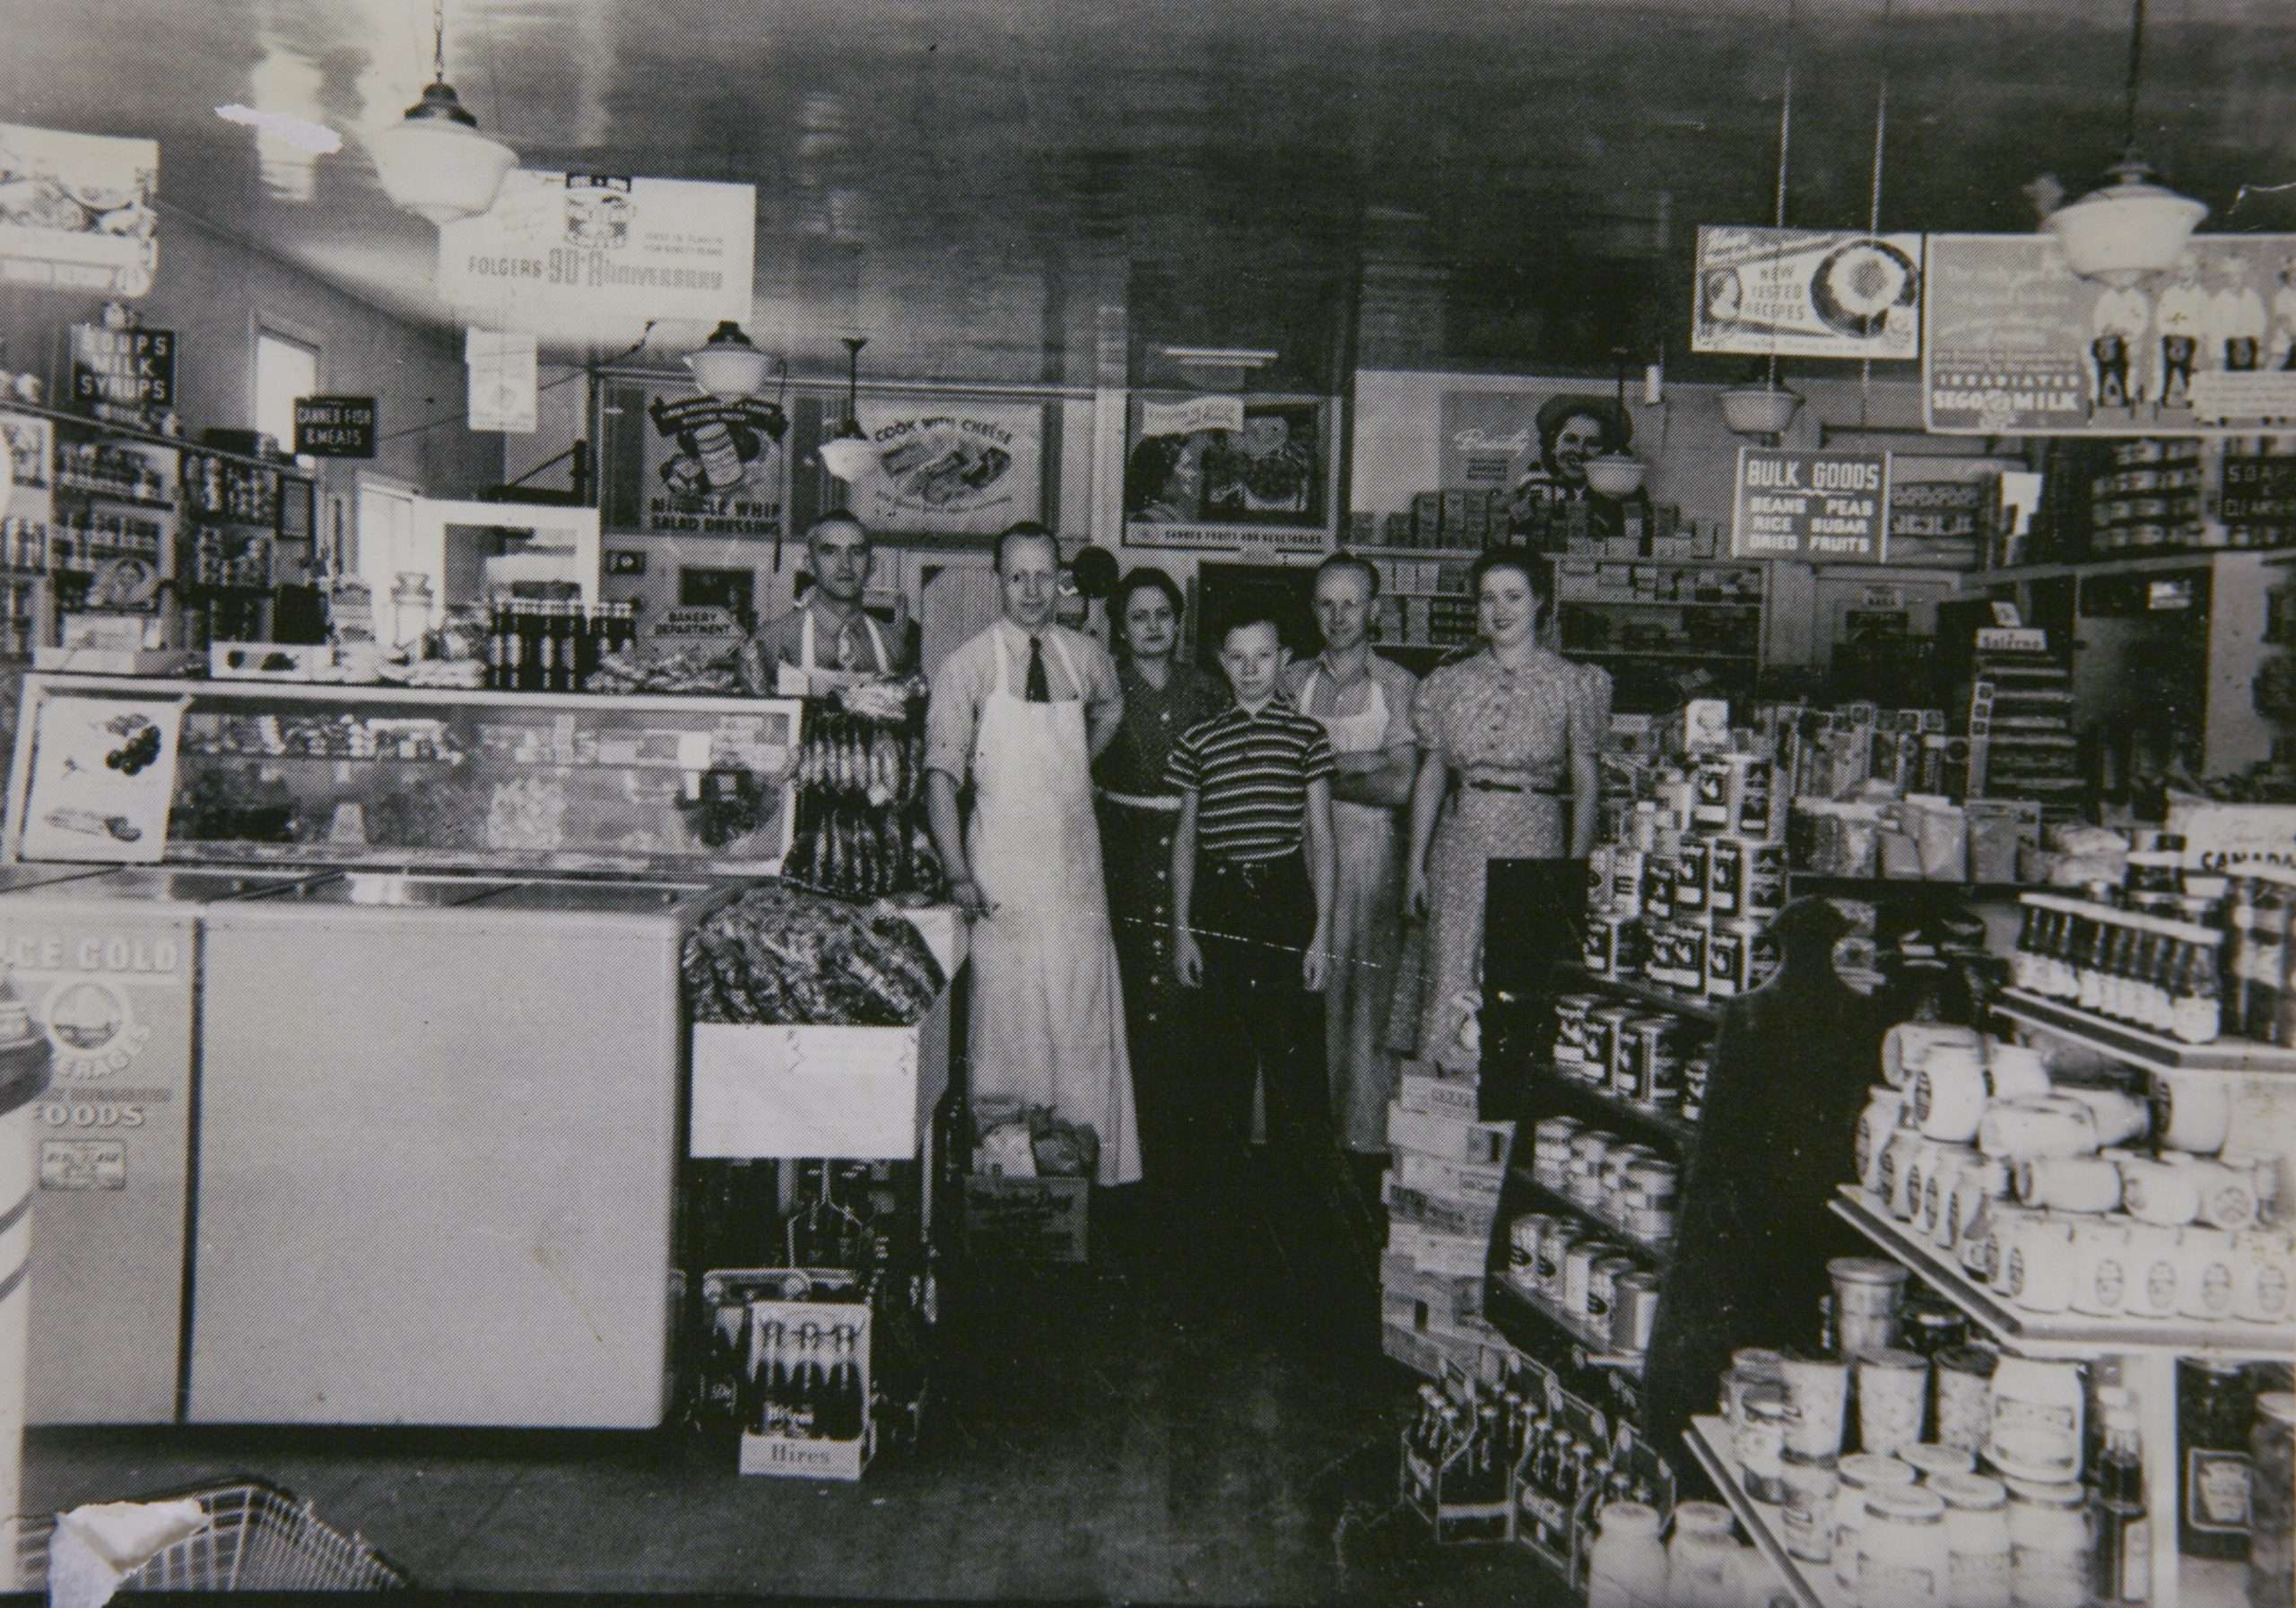 WomenBegan Working in Grocery Stores